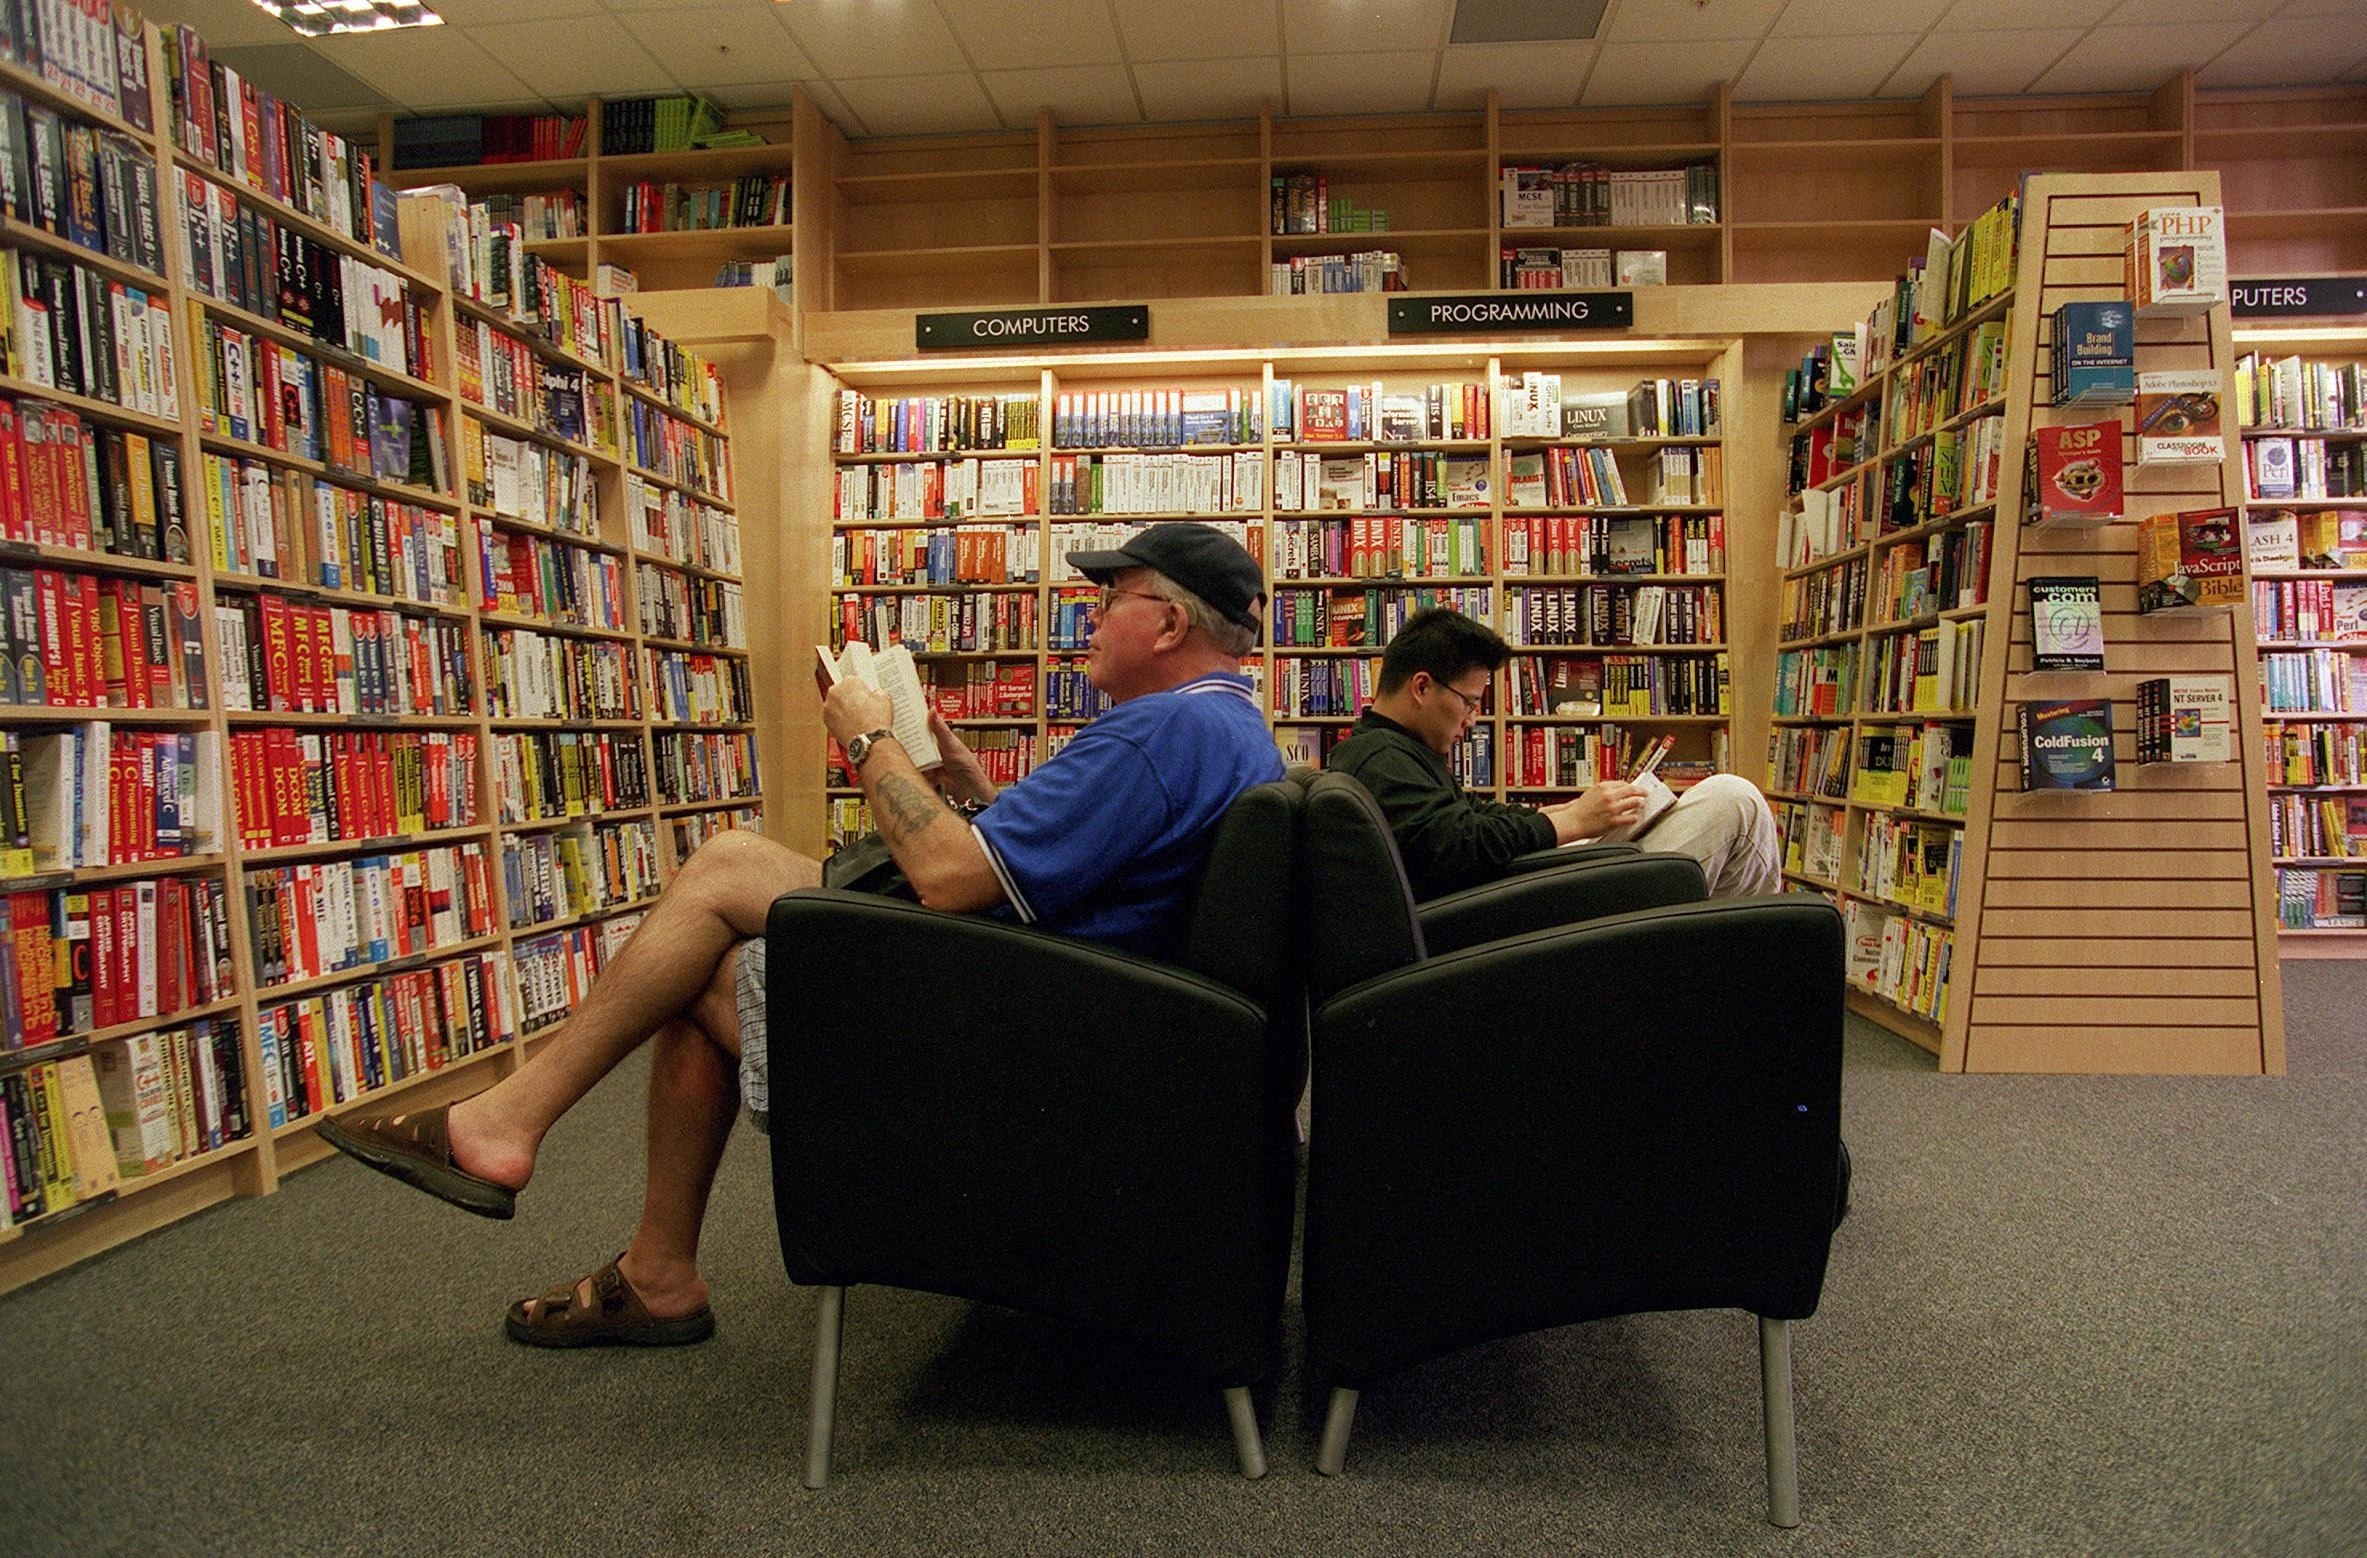 Two men sitting in chairs inside a Borders reading books